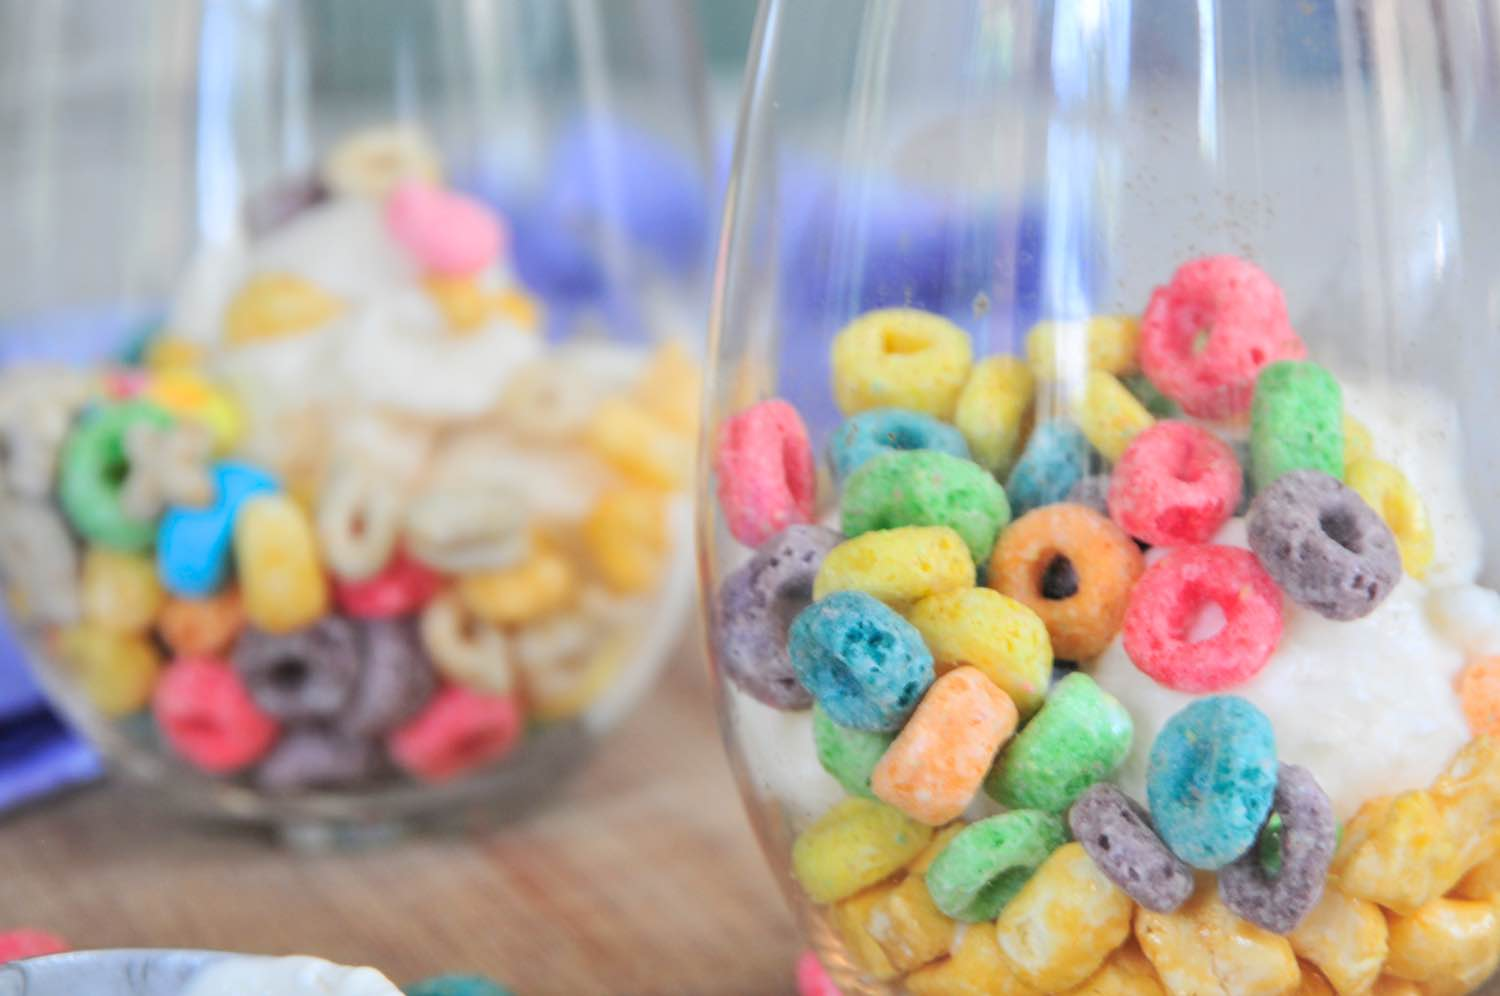 close up of breakfast cereal frozen yogurt parfaits pop shop america